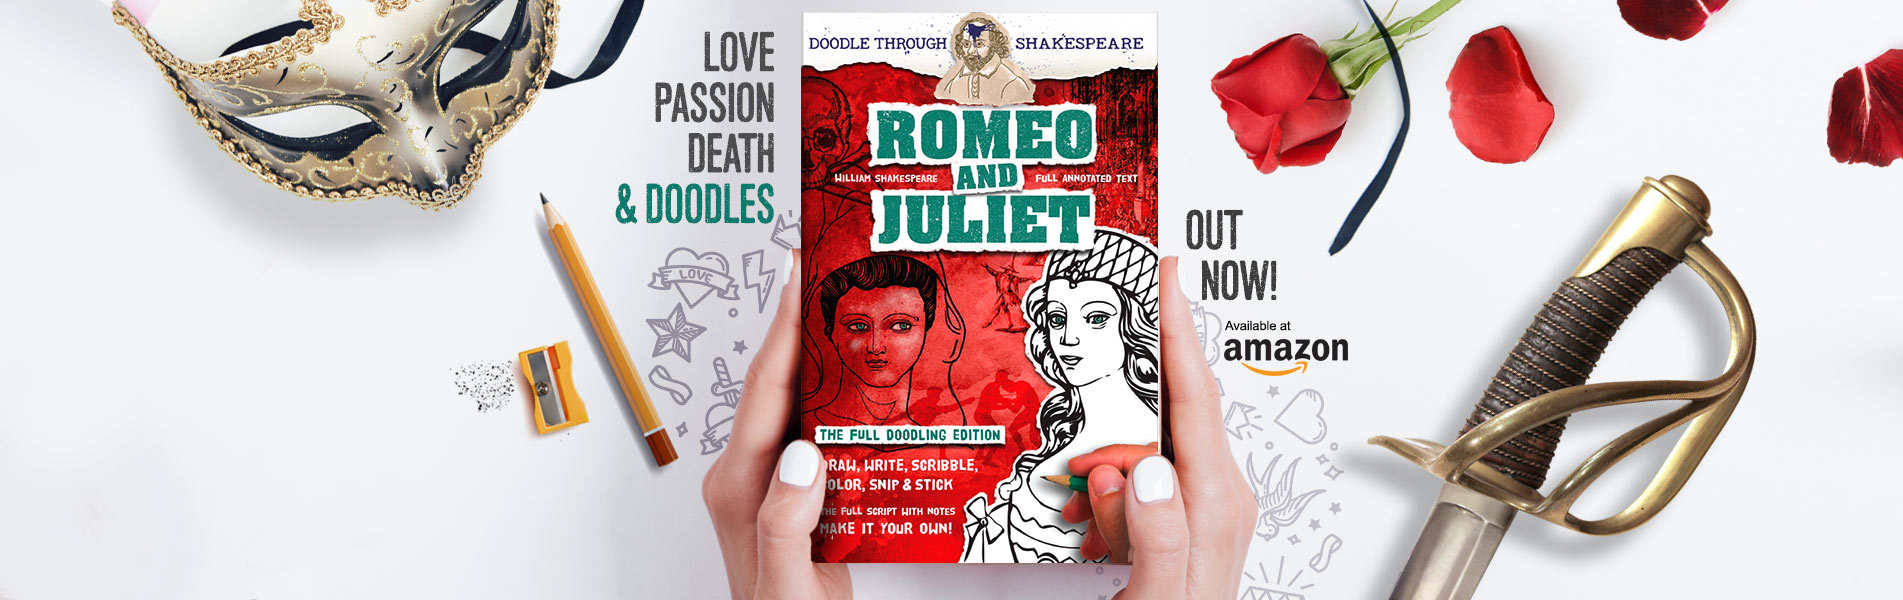 Romeo and Juliet: The Full Doodling Edition. Doodle Through Shakespeare book. Love, Passion, Death & Doodles. Available at Amazon